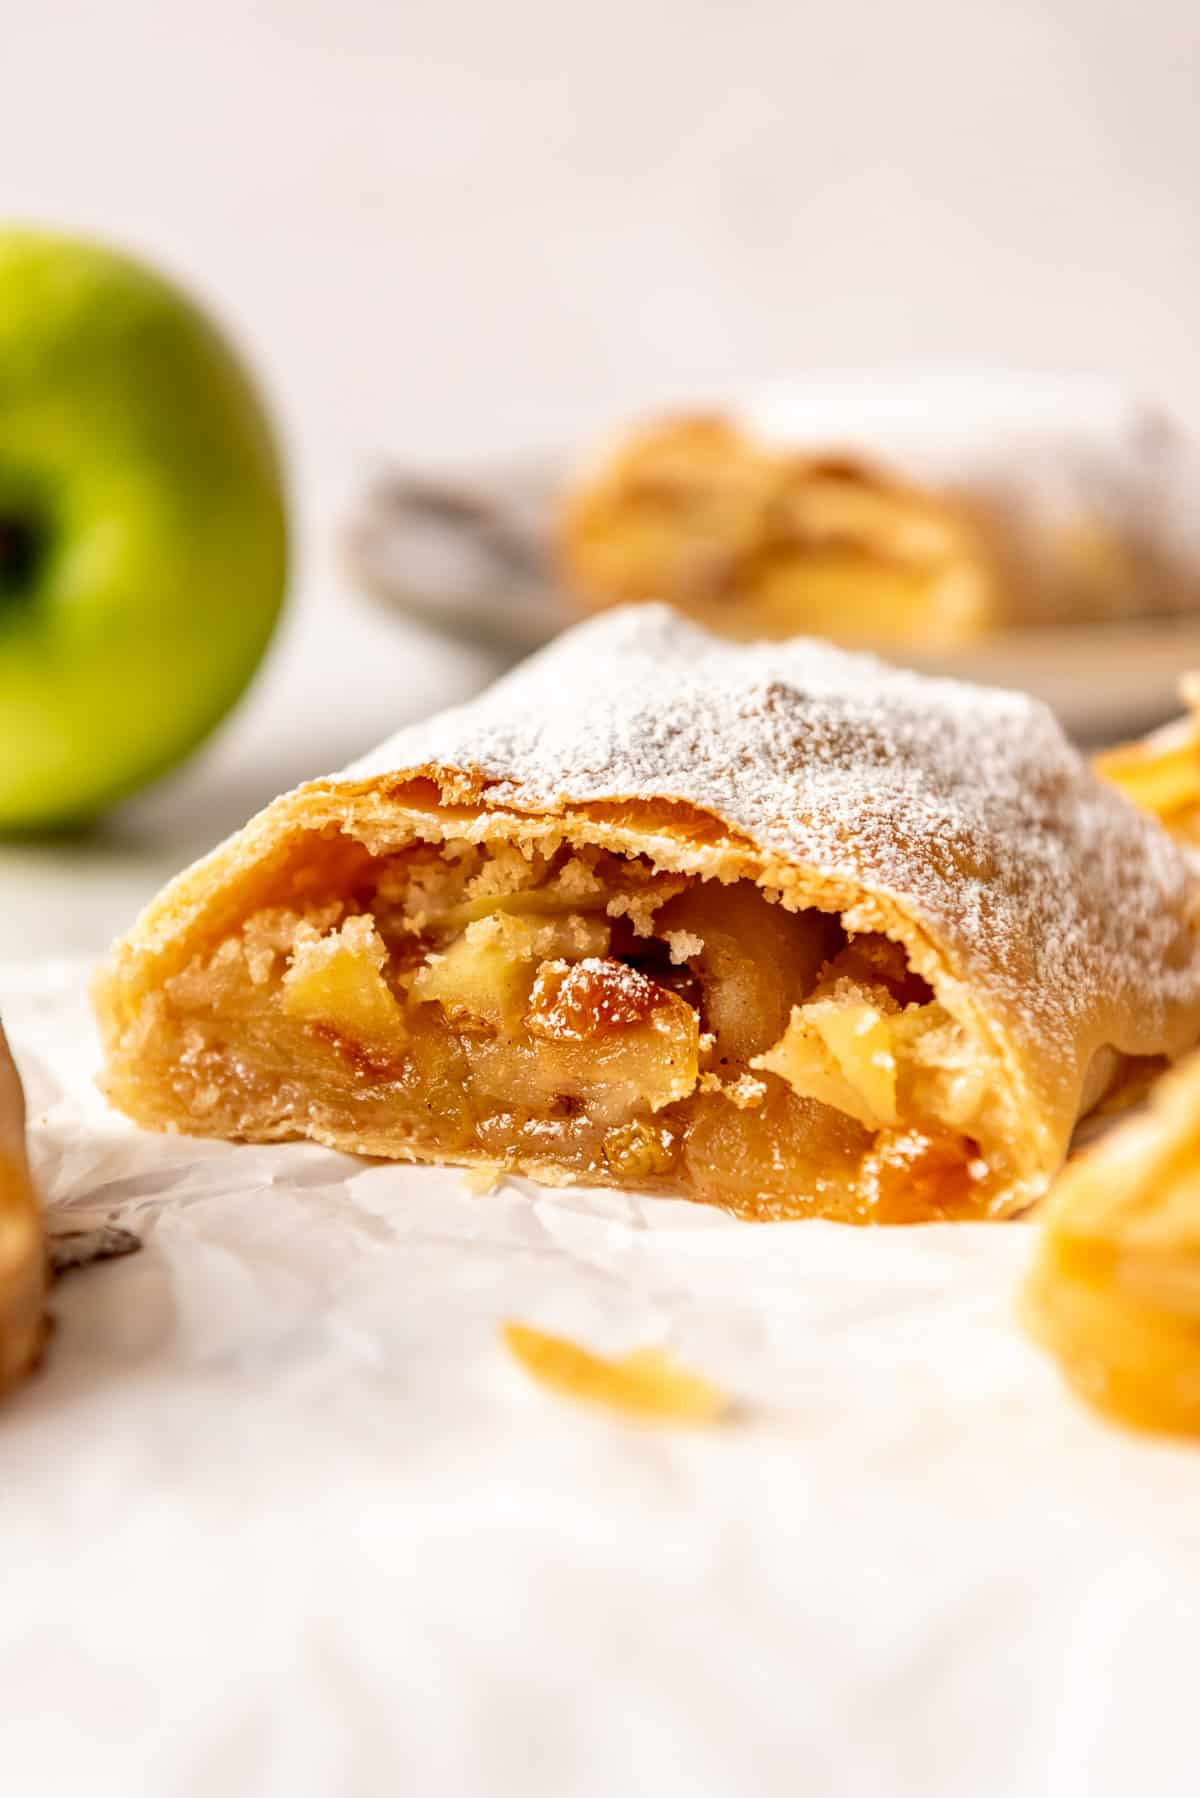 a slice of German apple strudel with raisins in front of a Granny Smith apple.